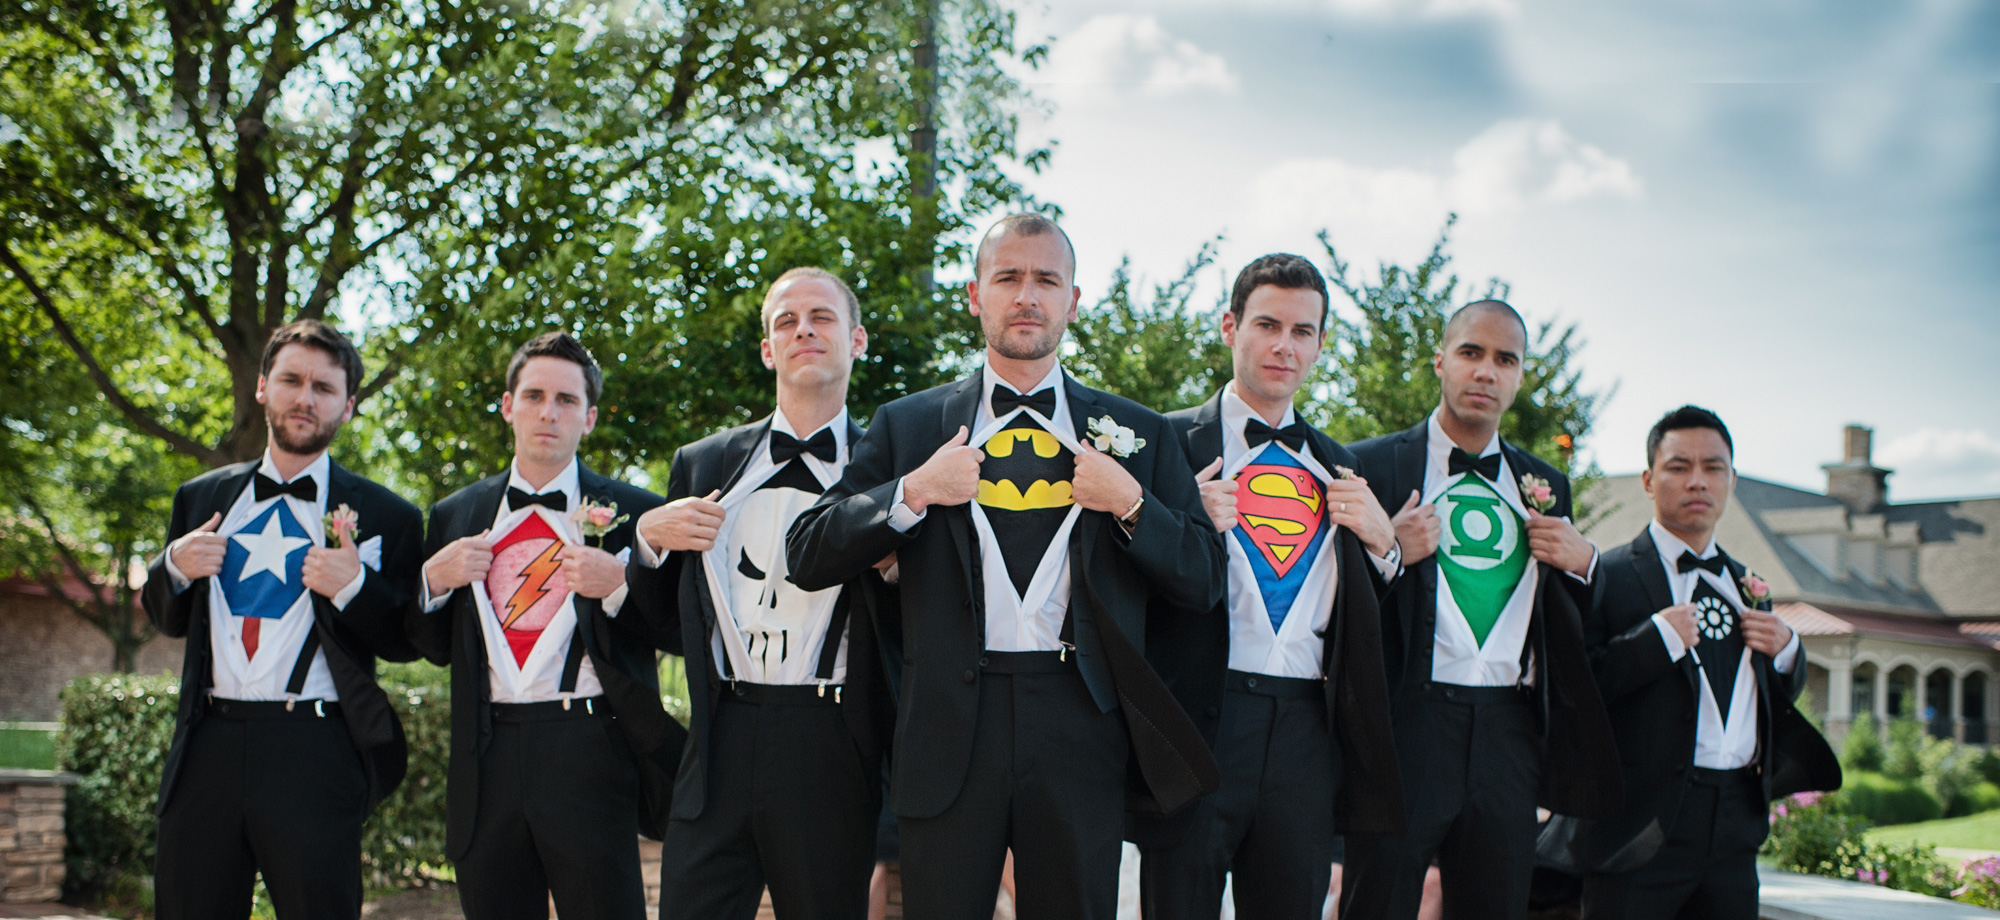 How To Be a Good Groomsman - Rose Tuxedo: Wedding Tuxedo-Quince Tuxedo ...